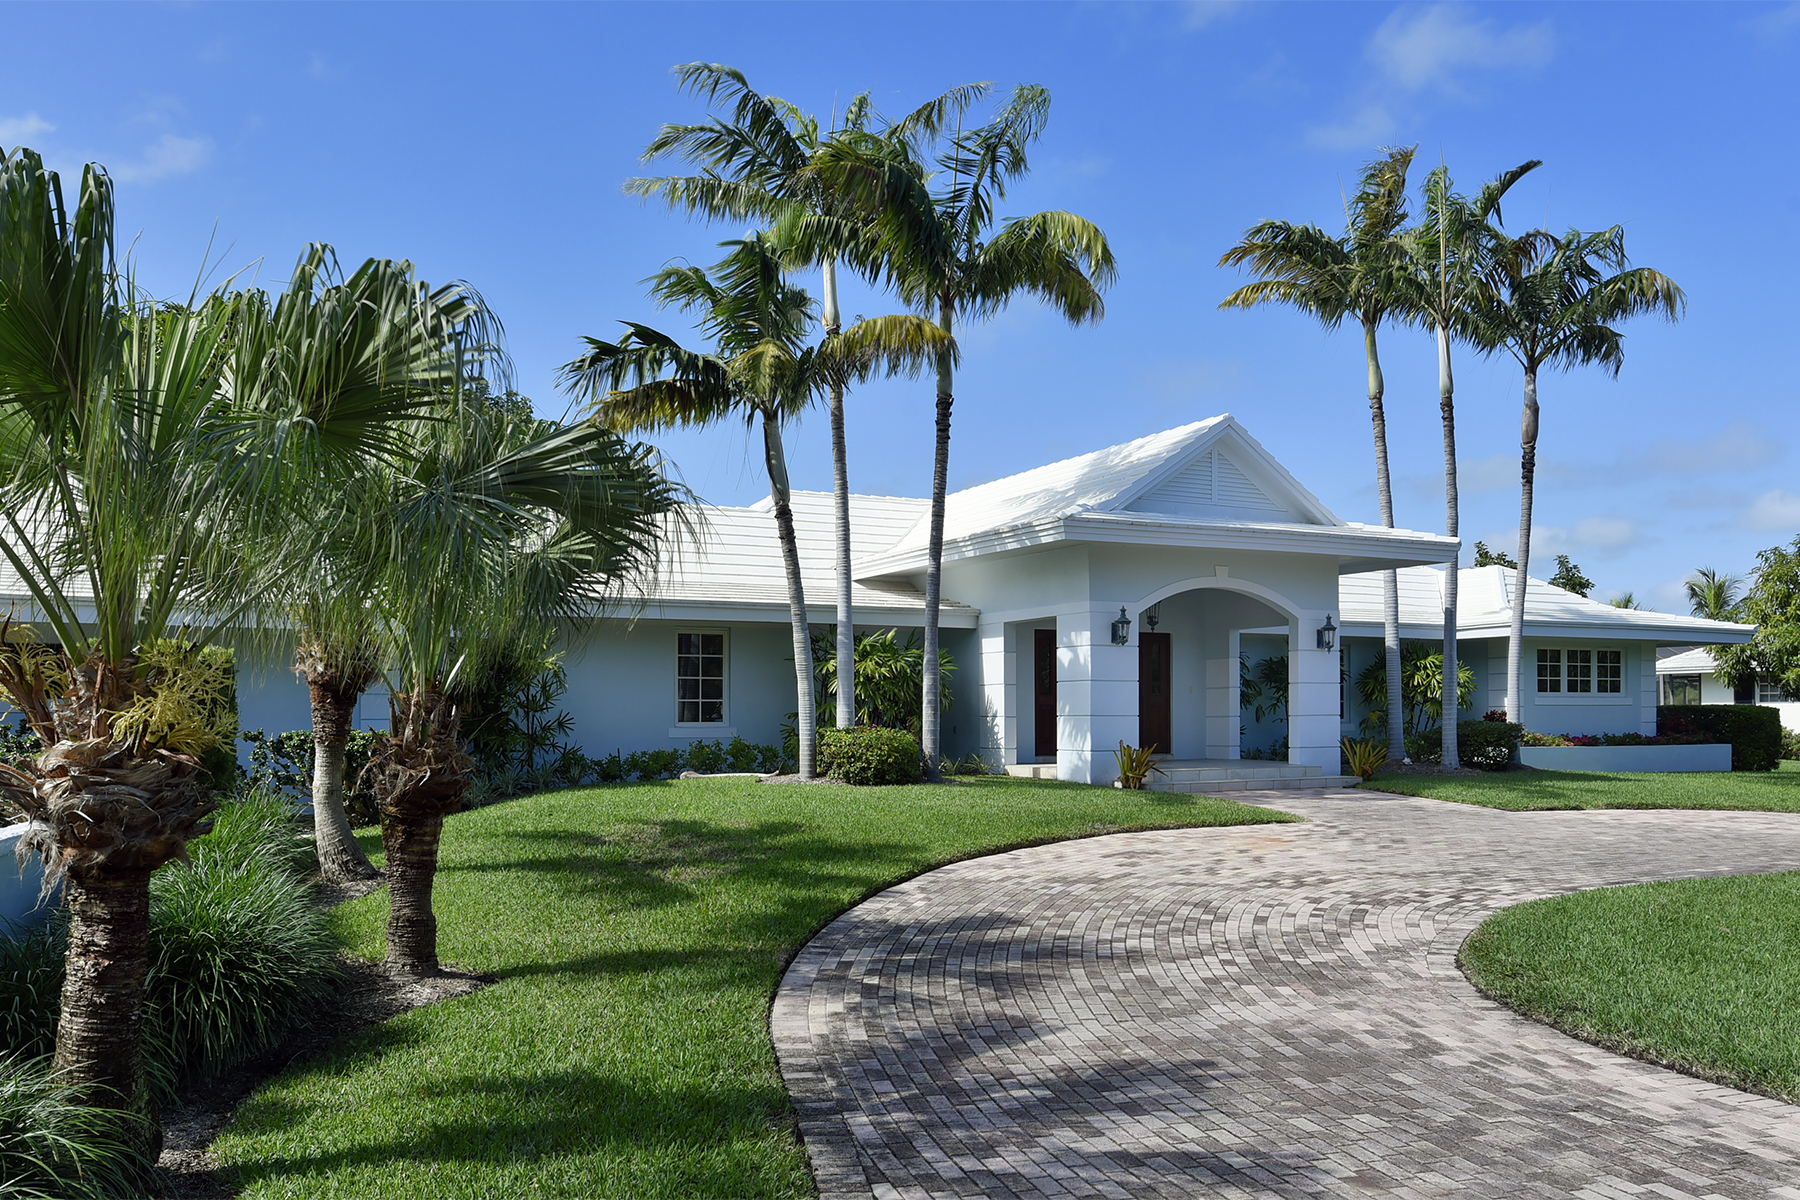 Vivienda unifamiliar por un Venta en Charming Waterfront Home at Ocean Reef 15 Sunset Cay Road Ocean Reef Community, Key Largo, Florida, 33037 Estados Unidos